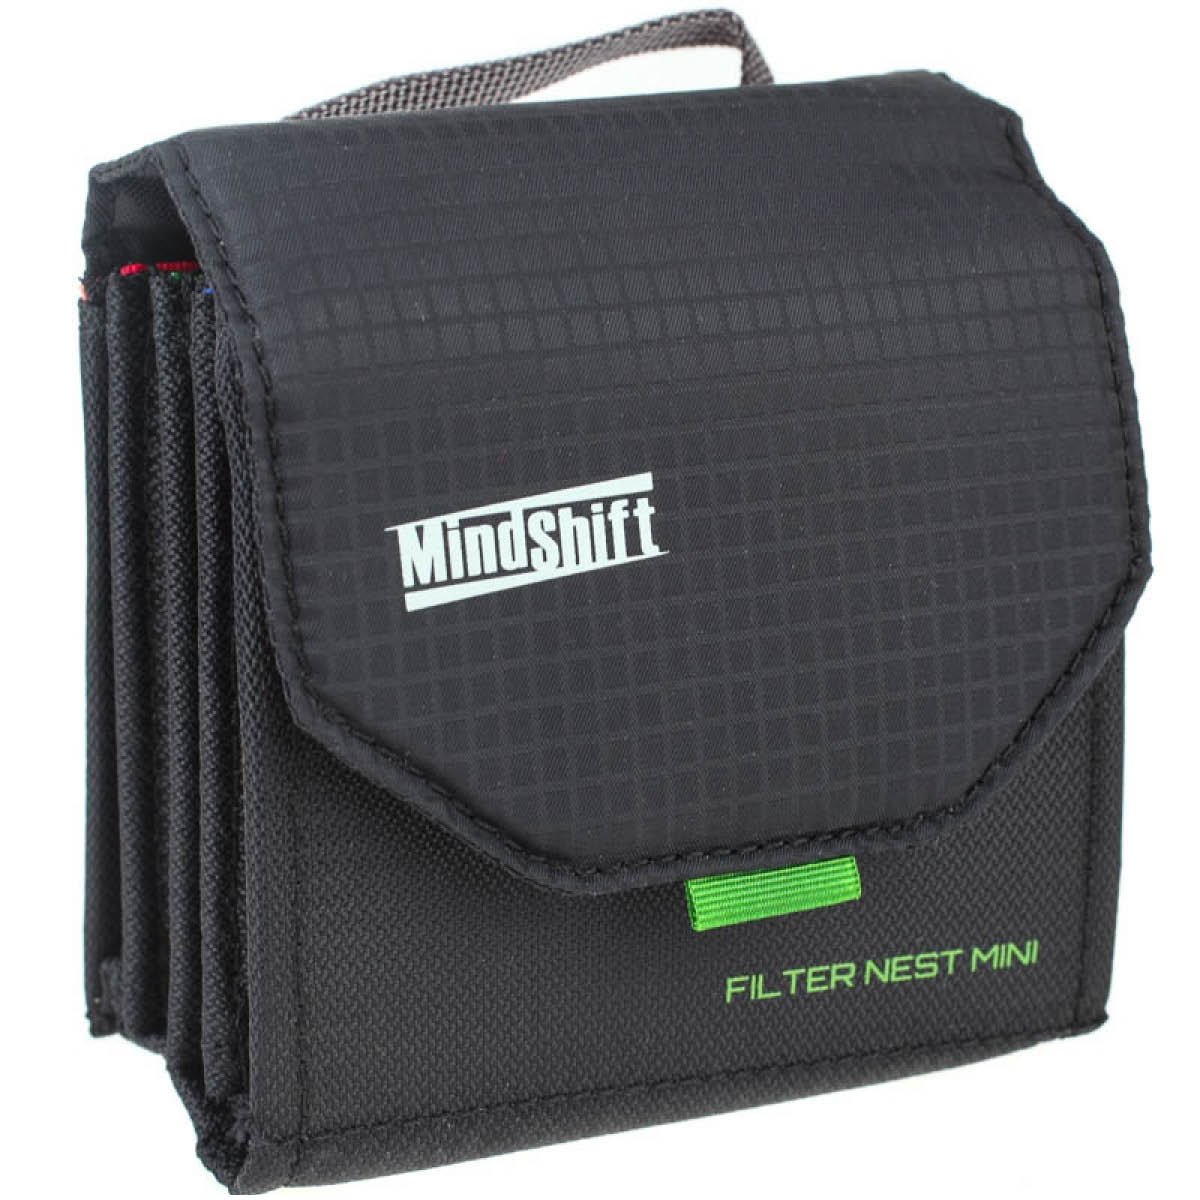 Mindshift Filtertasche Nest Mini